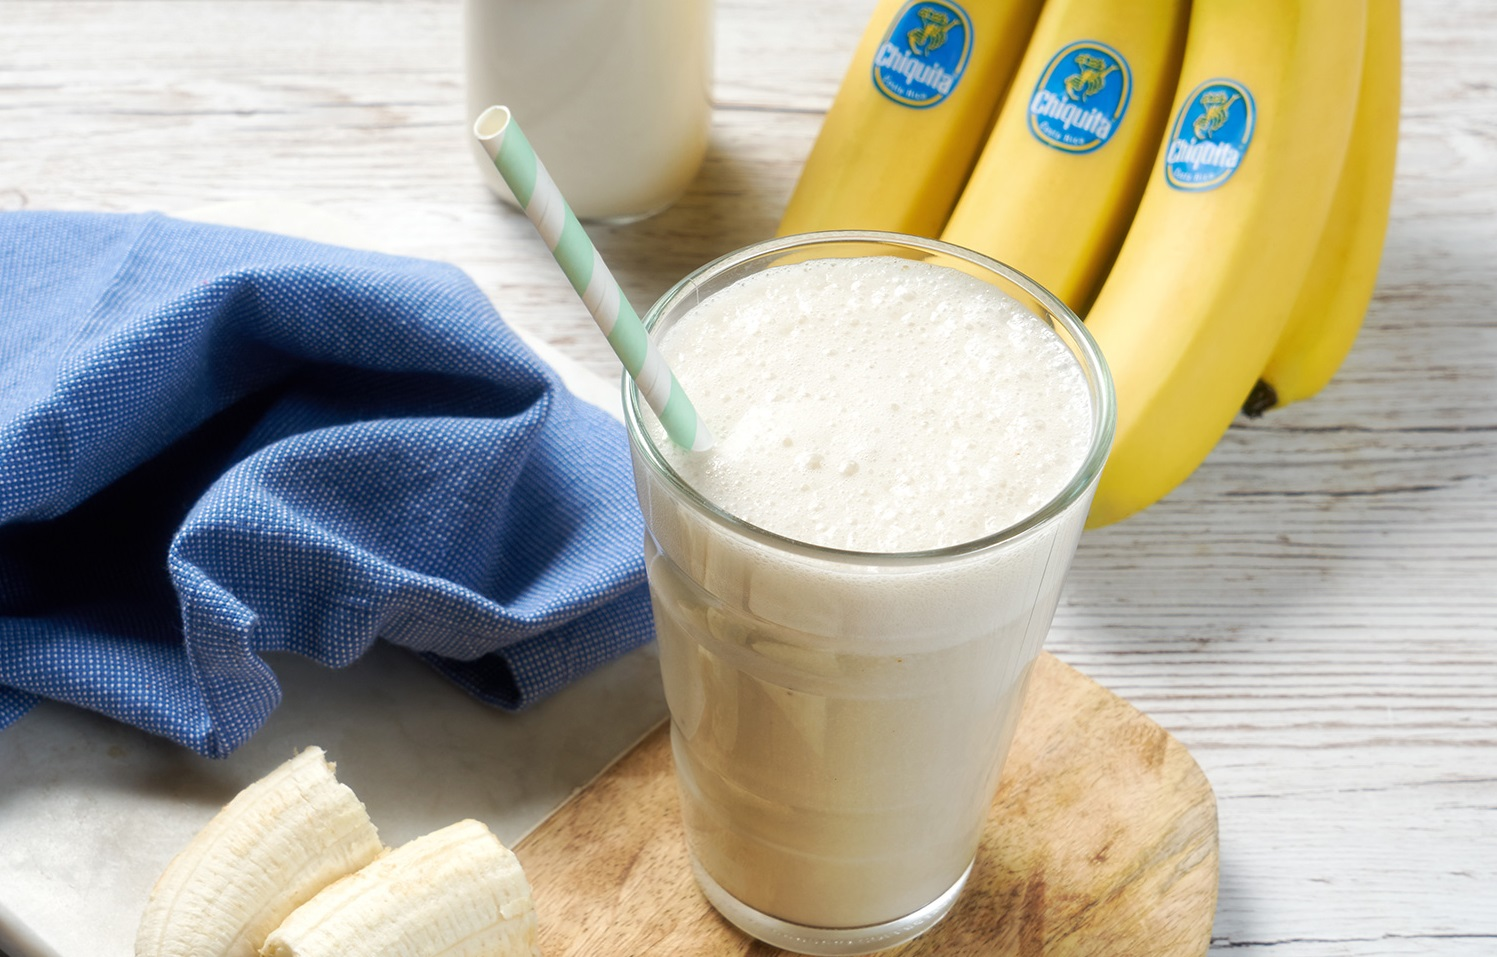 Banana shake after workout!